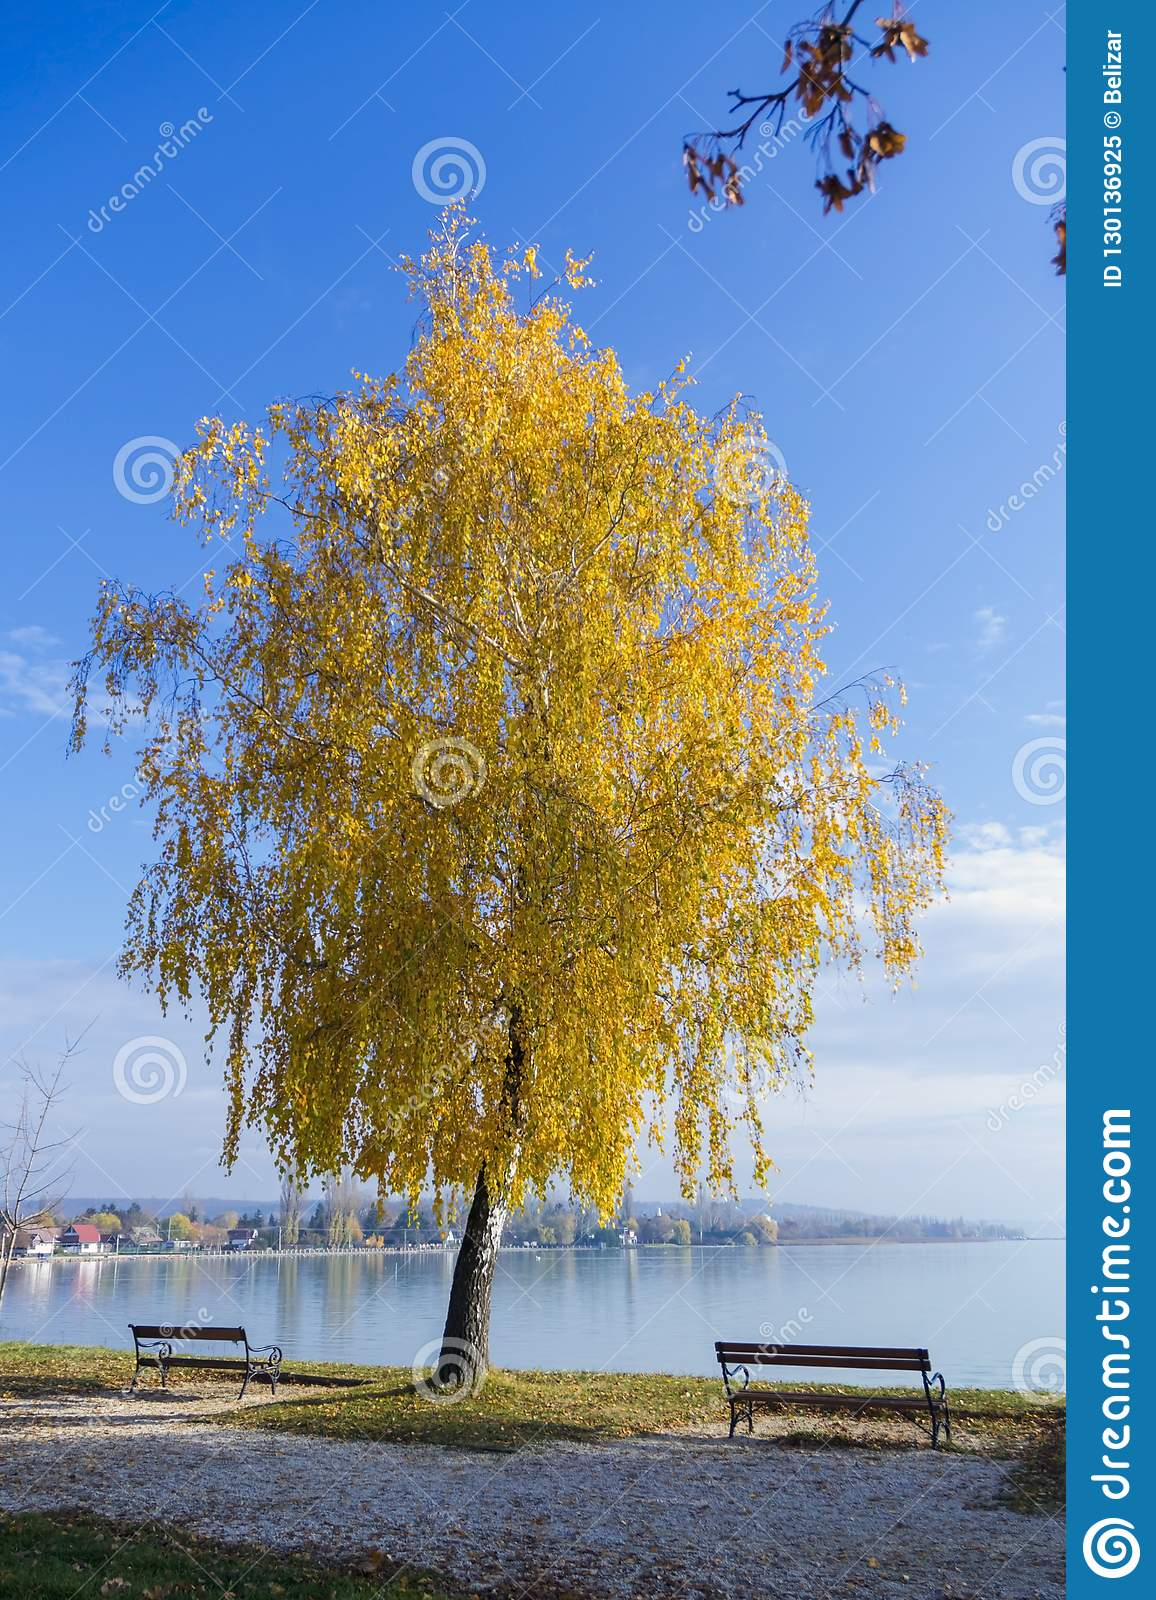 Tree at te beach